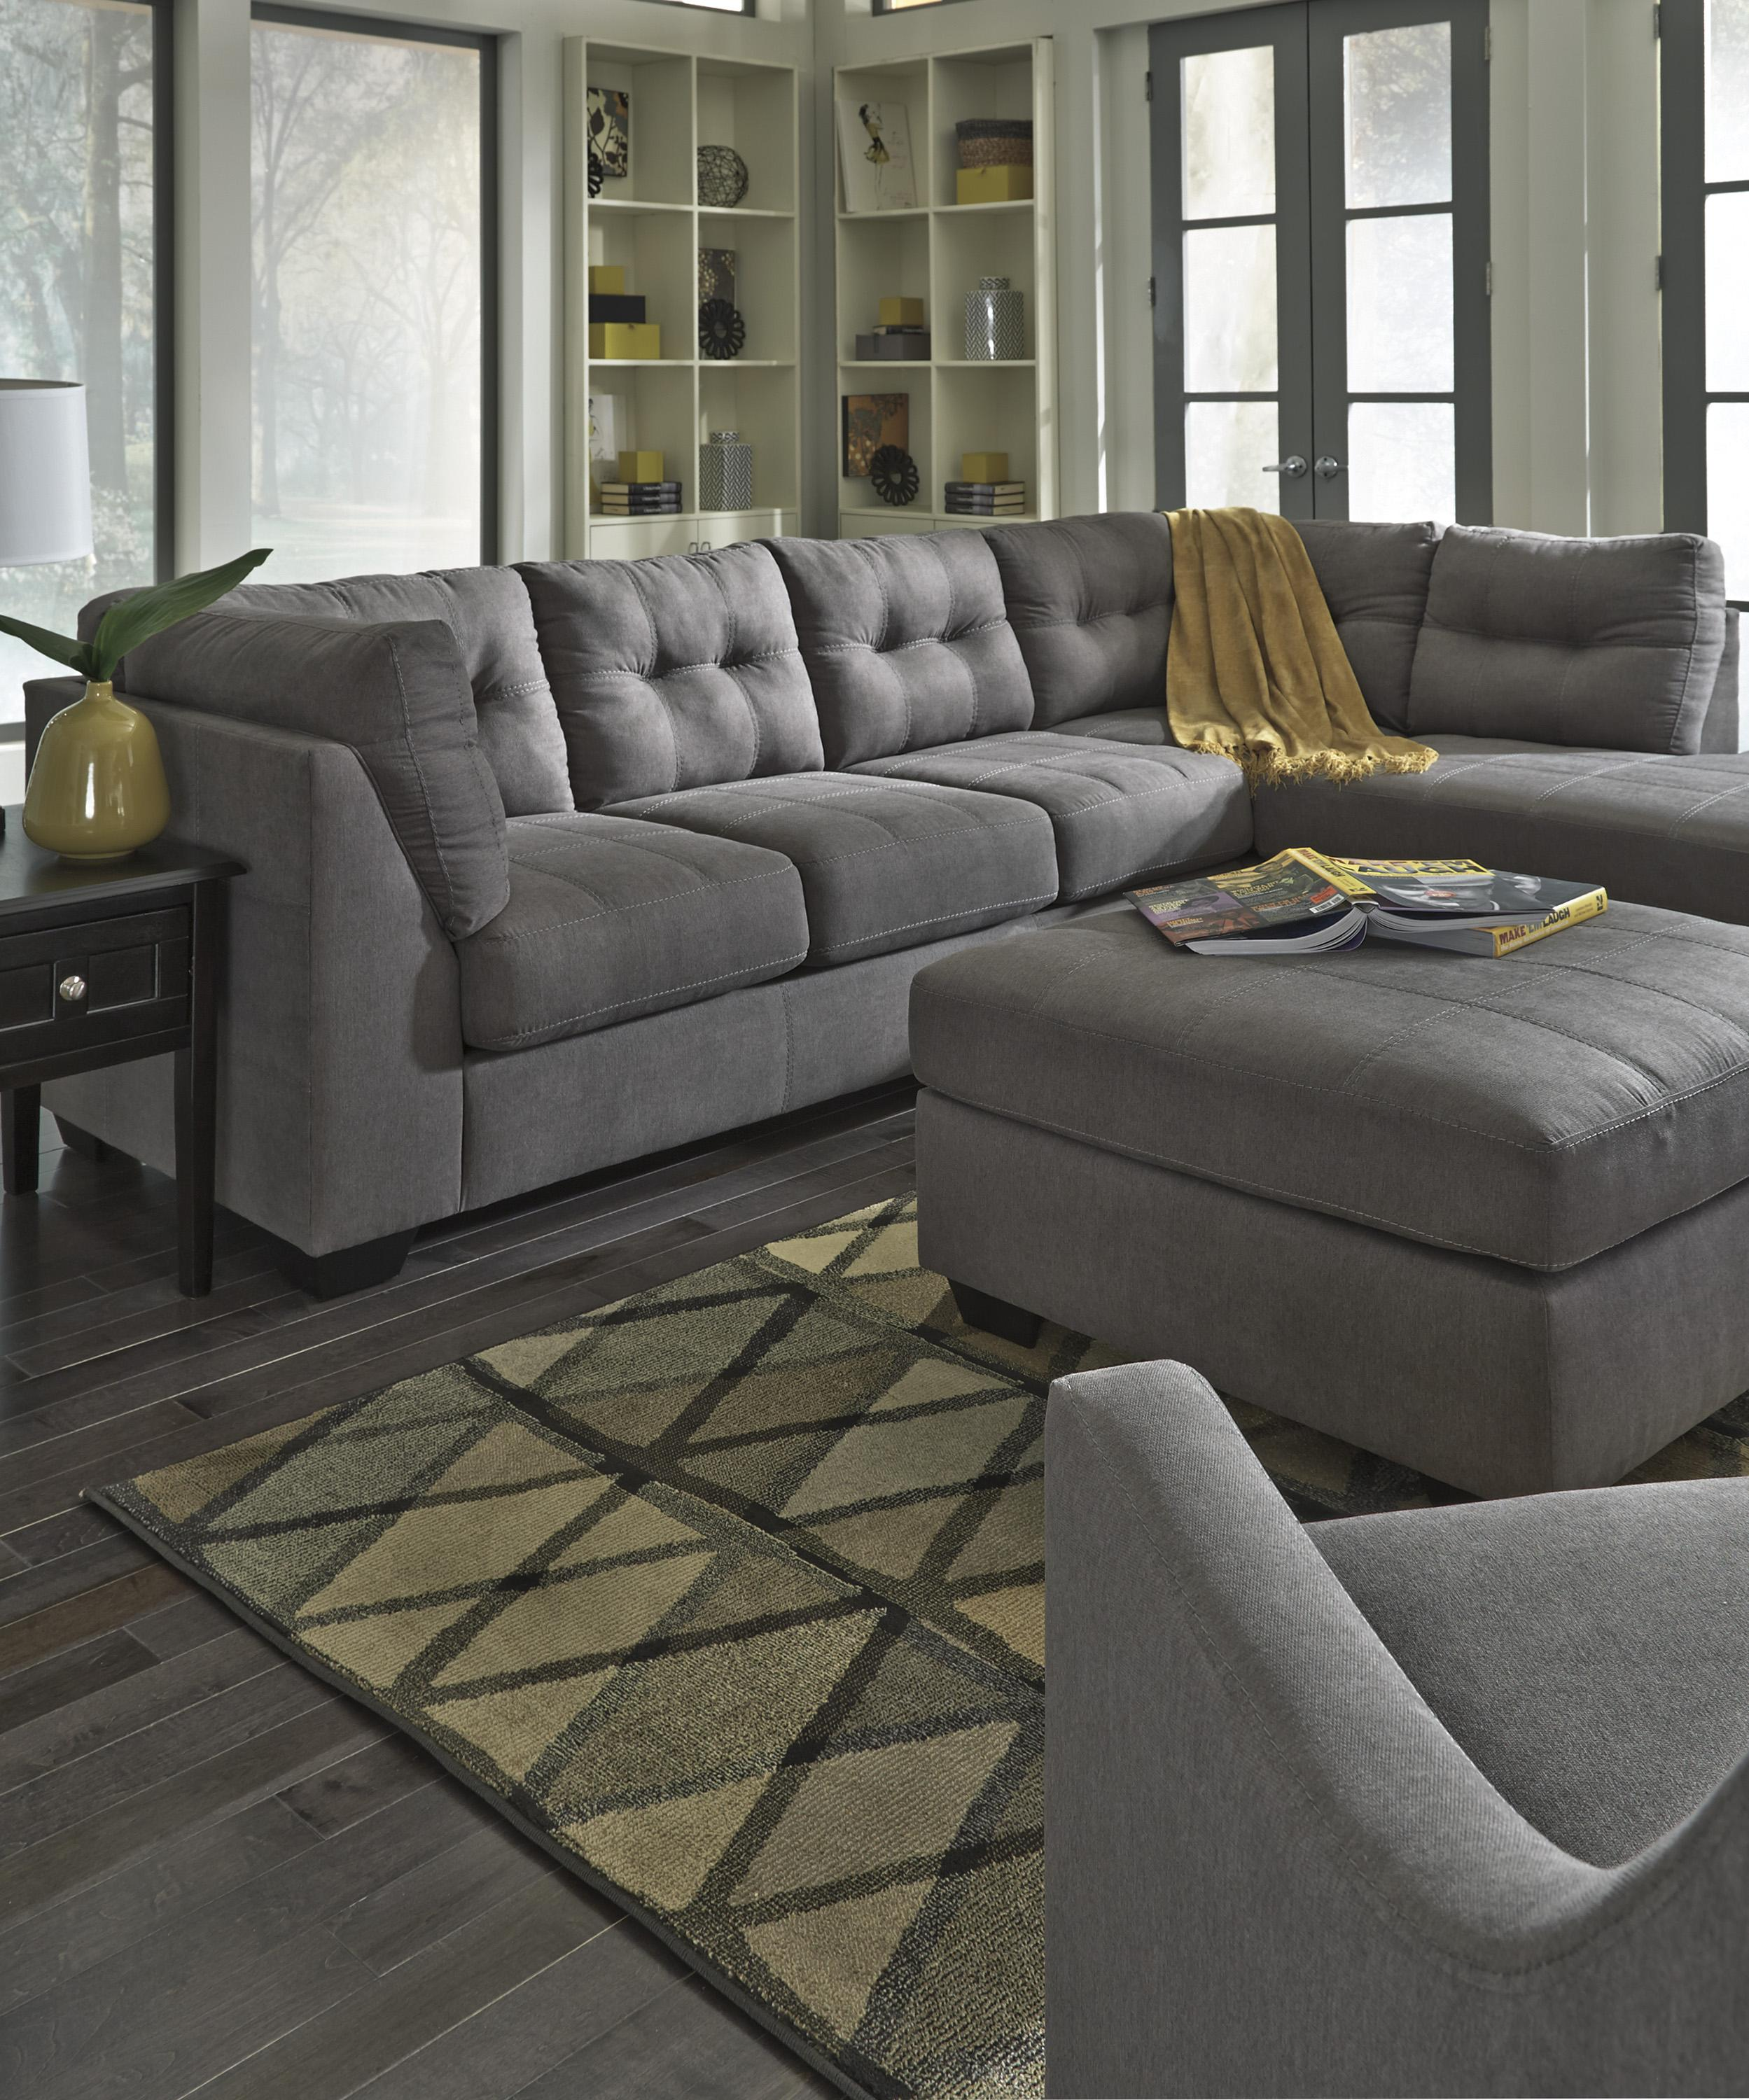 2 Piece Sectional With Right Chaise By Benchcraft Wolf And Gardiner Wolf Furniture